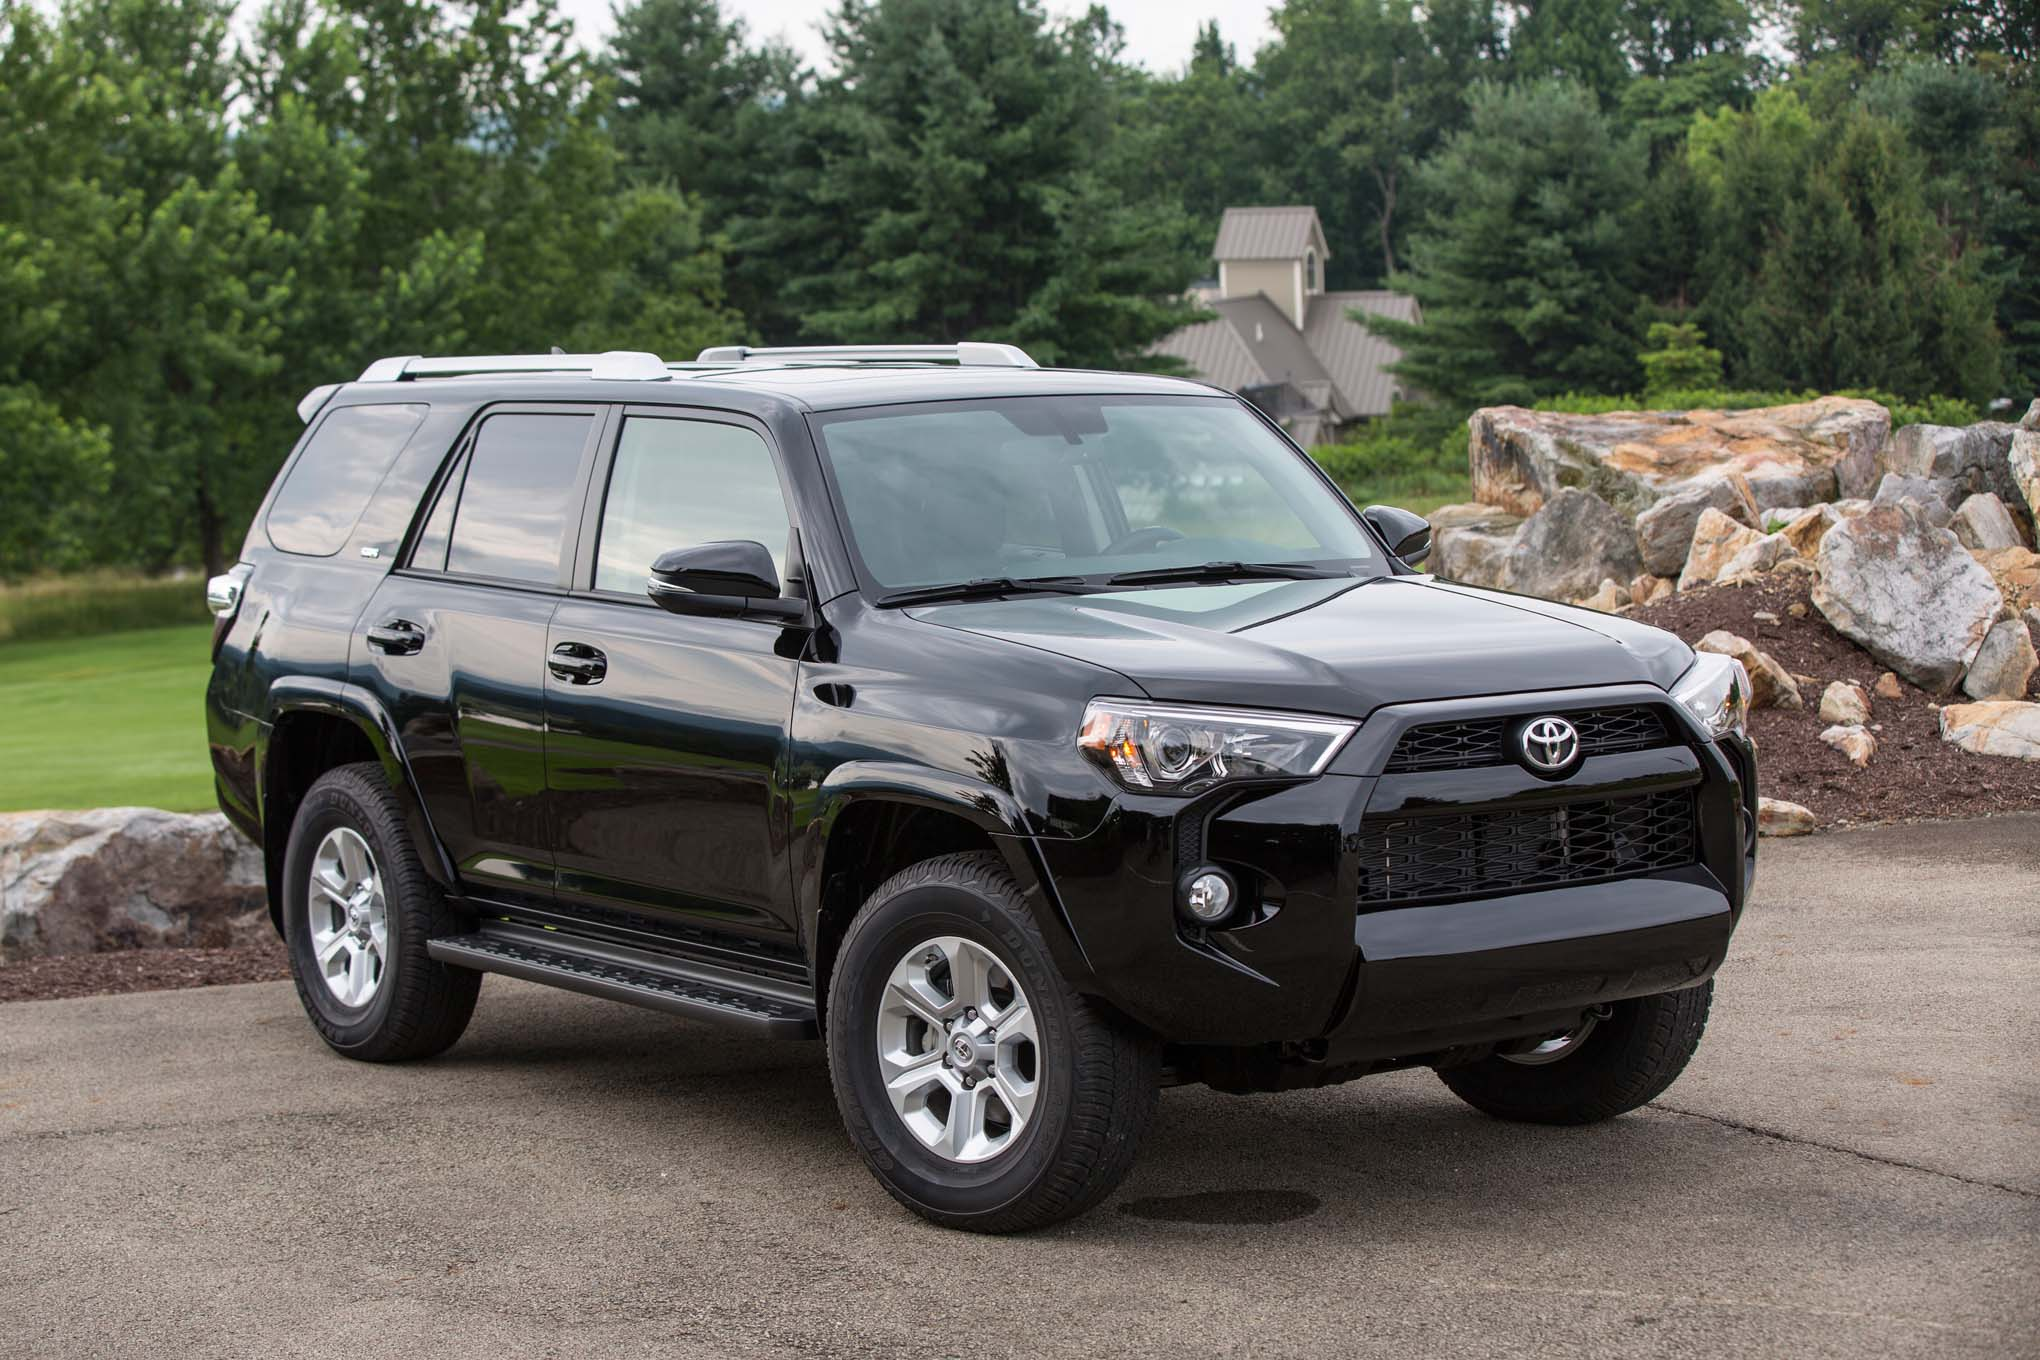 2019 Toyota 4Runner Release Date, Price, Rumors, Interior ...